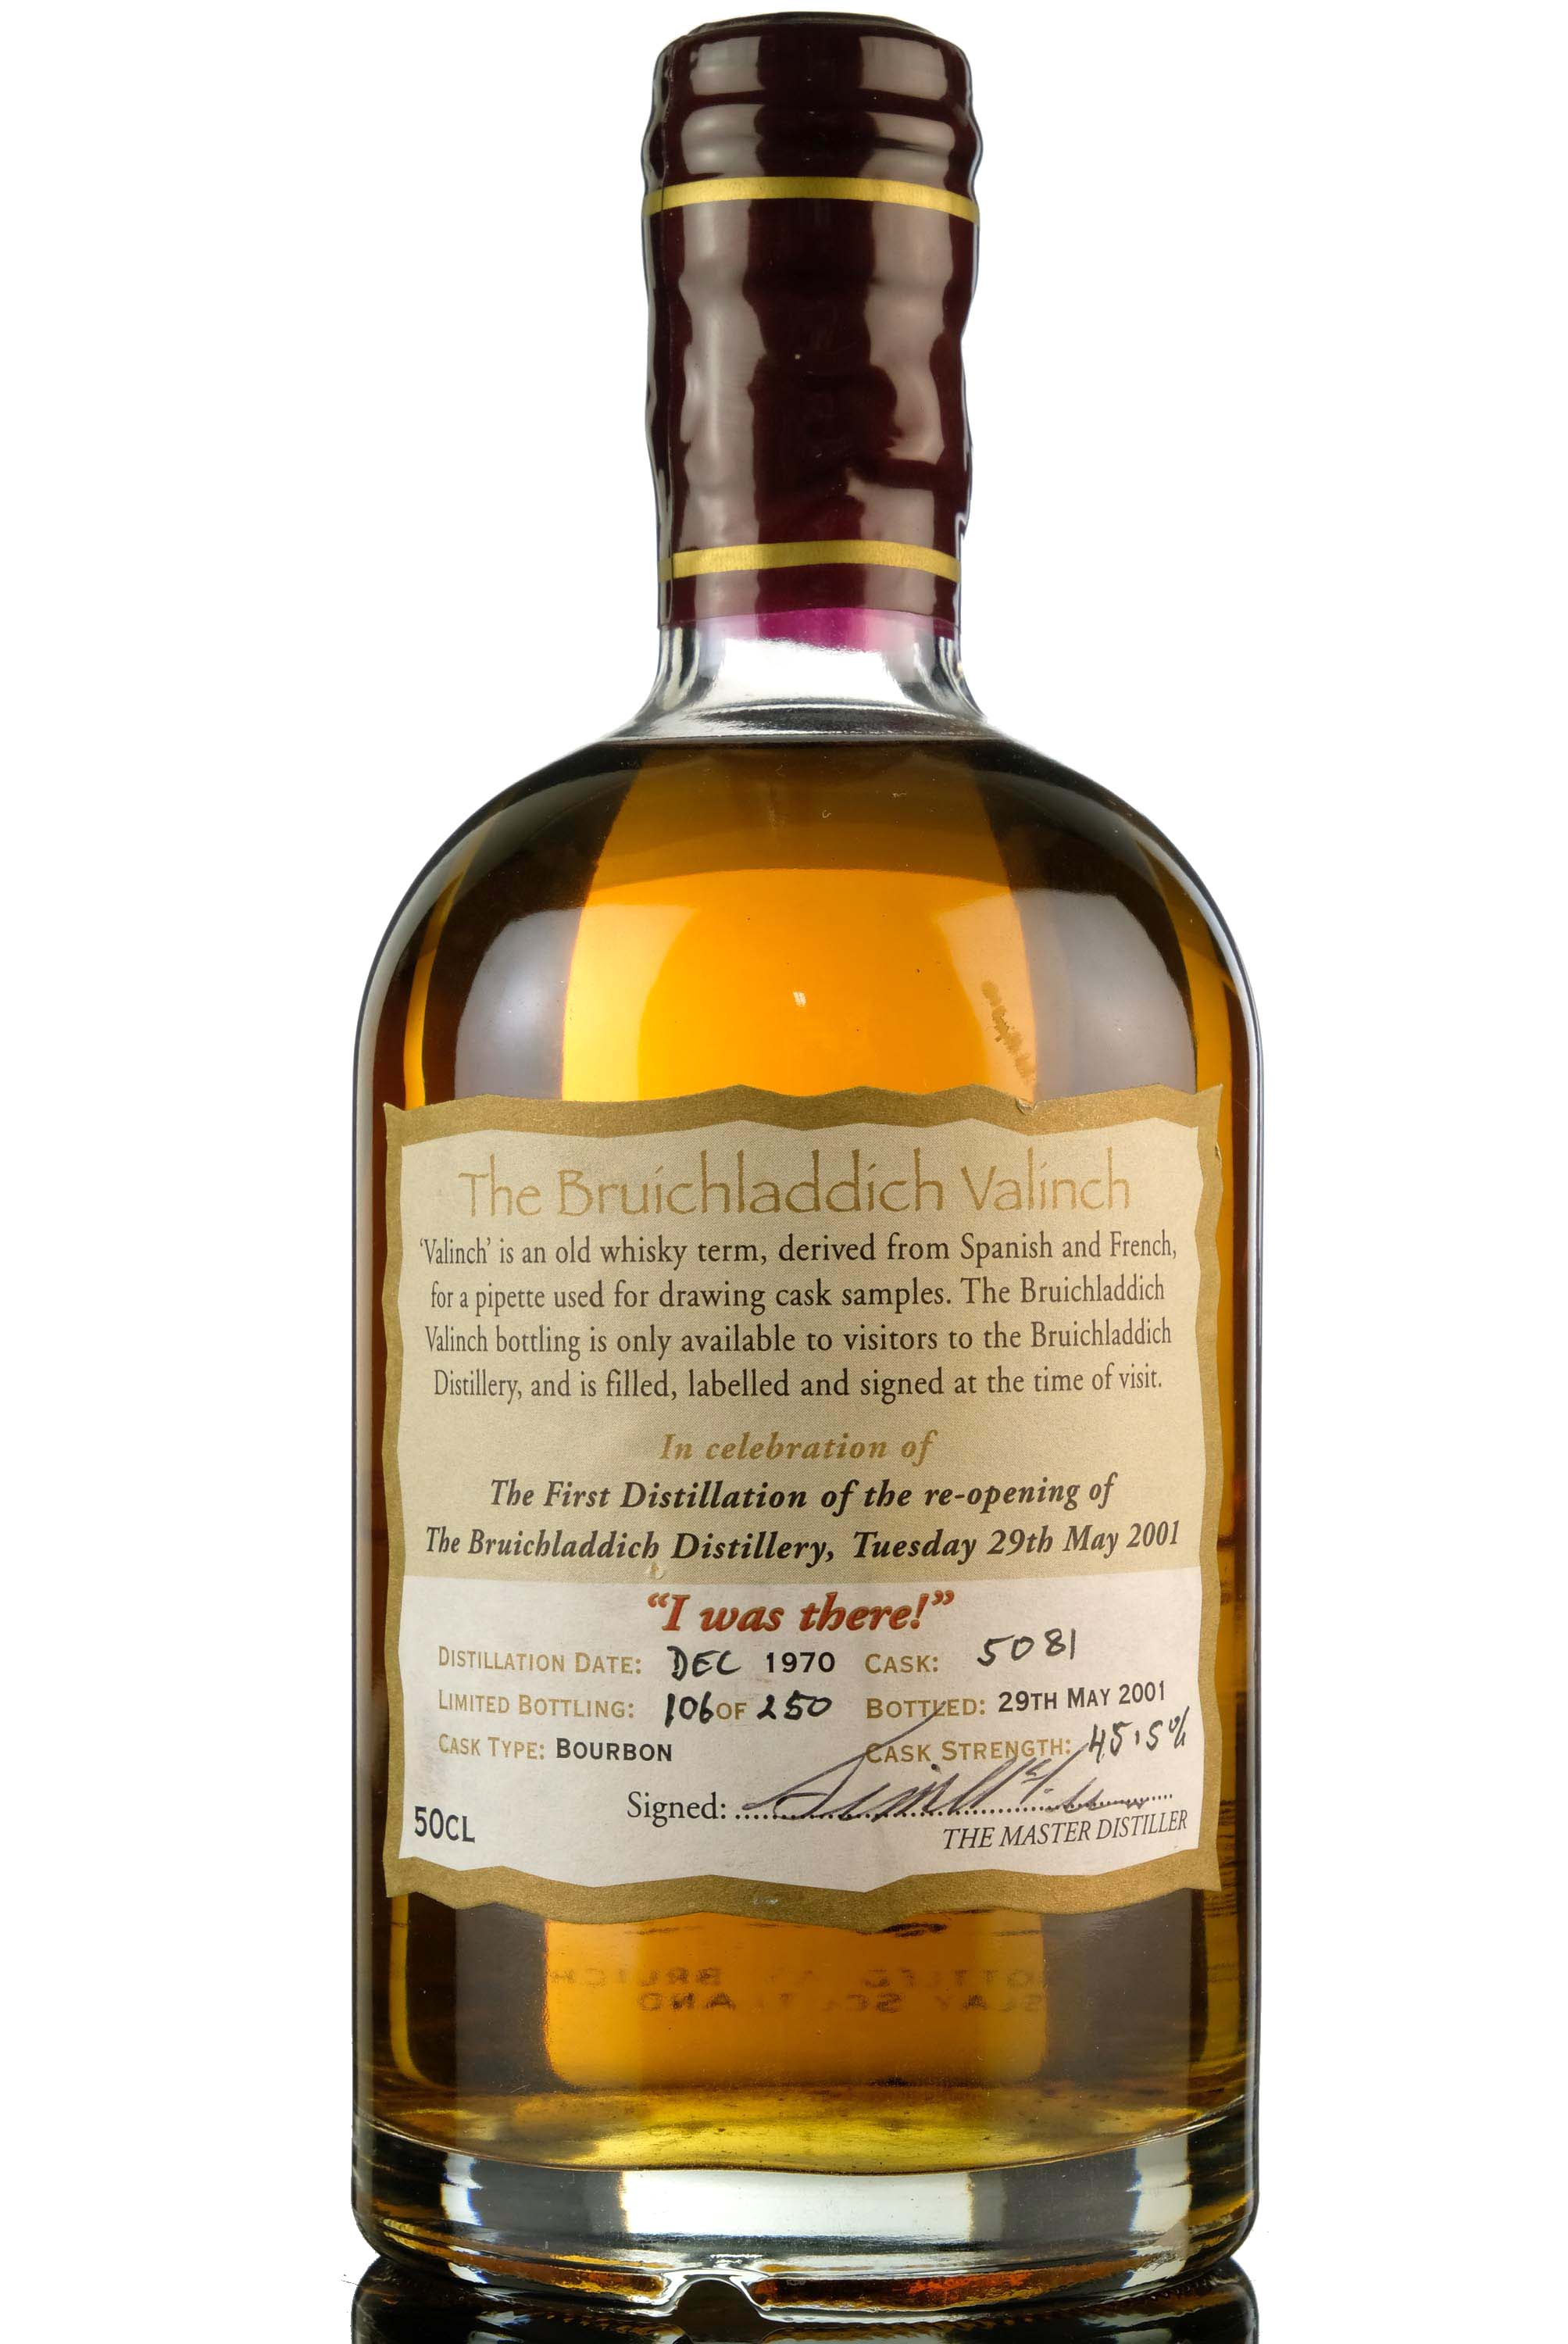 bruichladdich 1970-2001 - reopening i was there - single cask 5081